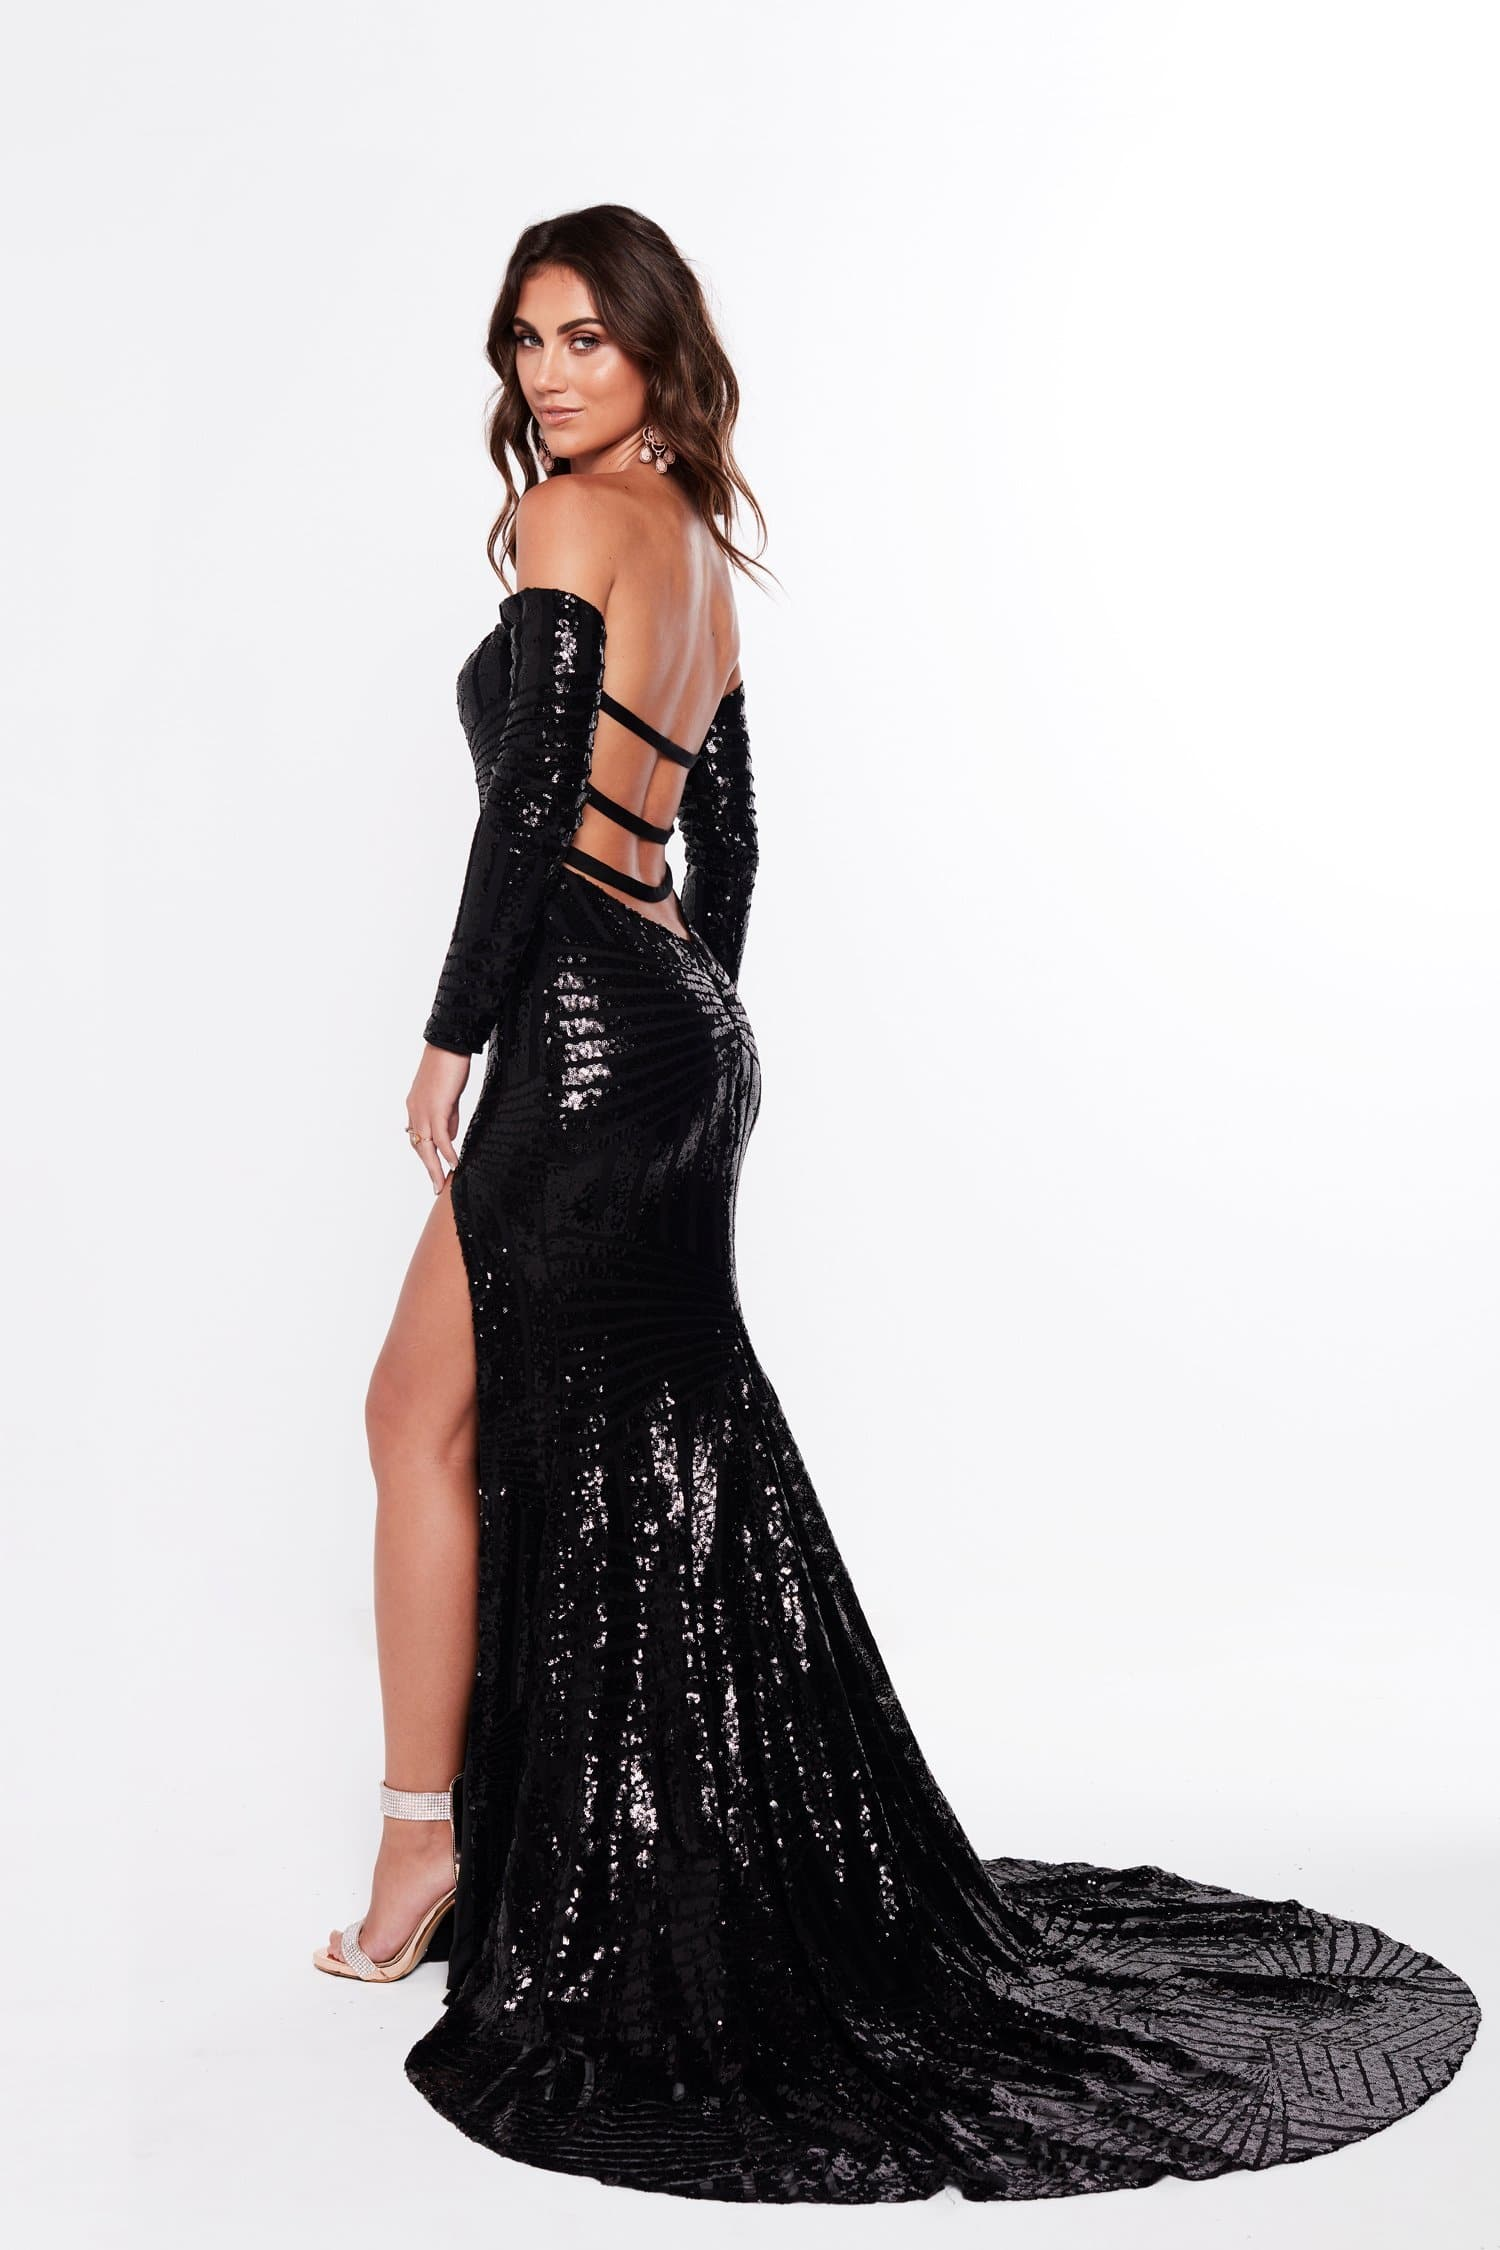 b64d31f6d44 A&N Regina - Black Sequin Gown with Off-Shoulder Long Sleeves – A&N ...